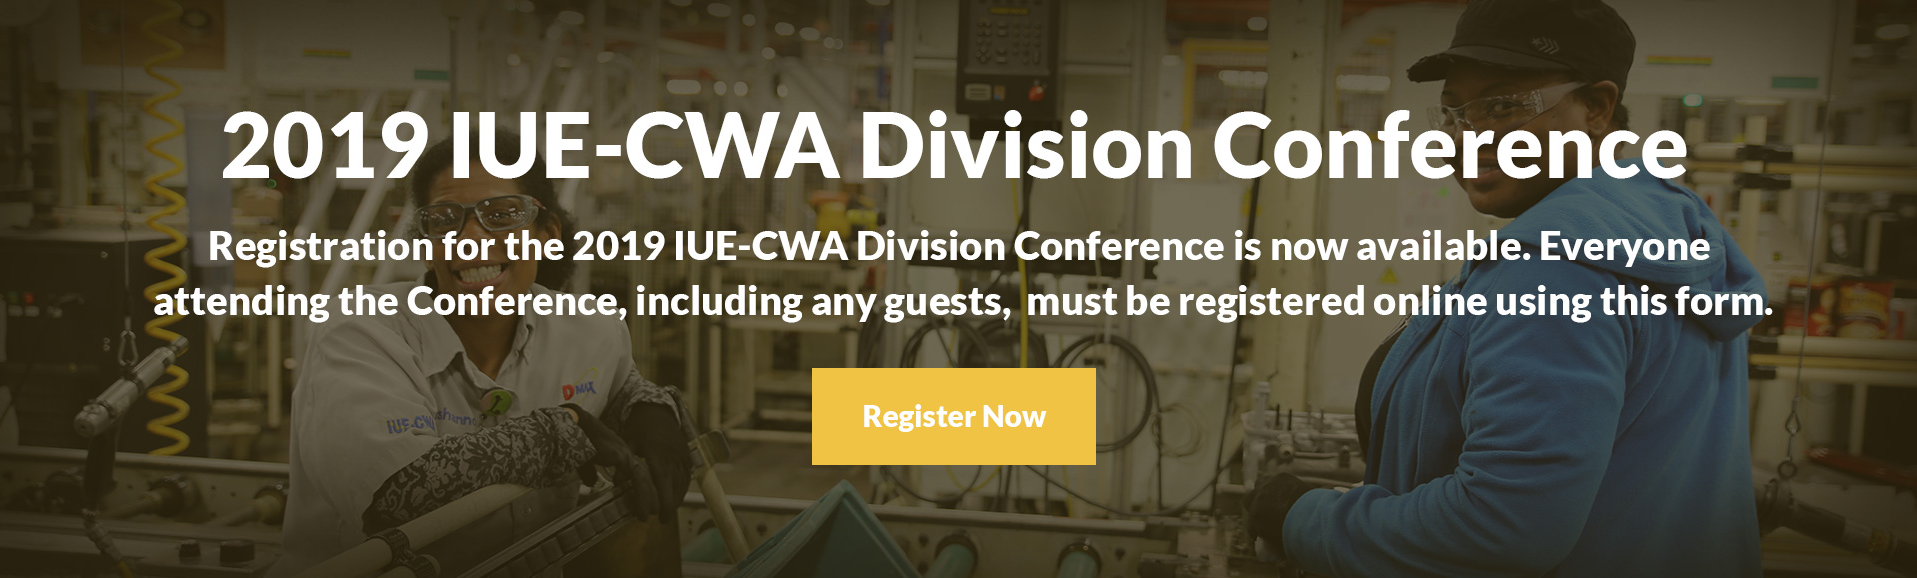 2019 IUE-CWA Division Conference Registration